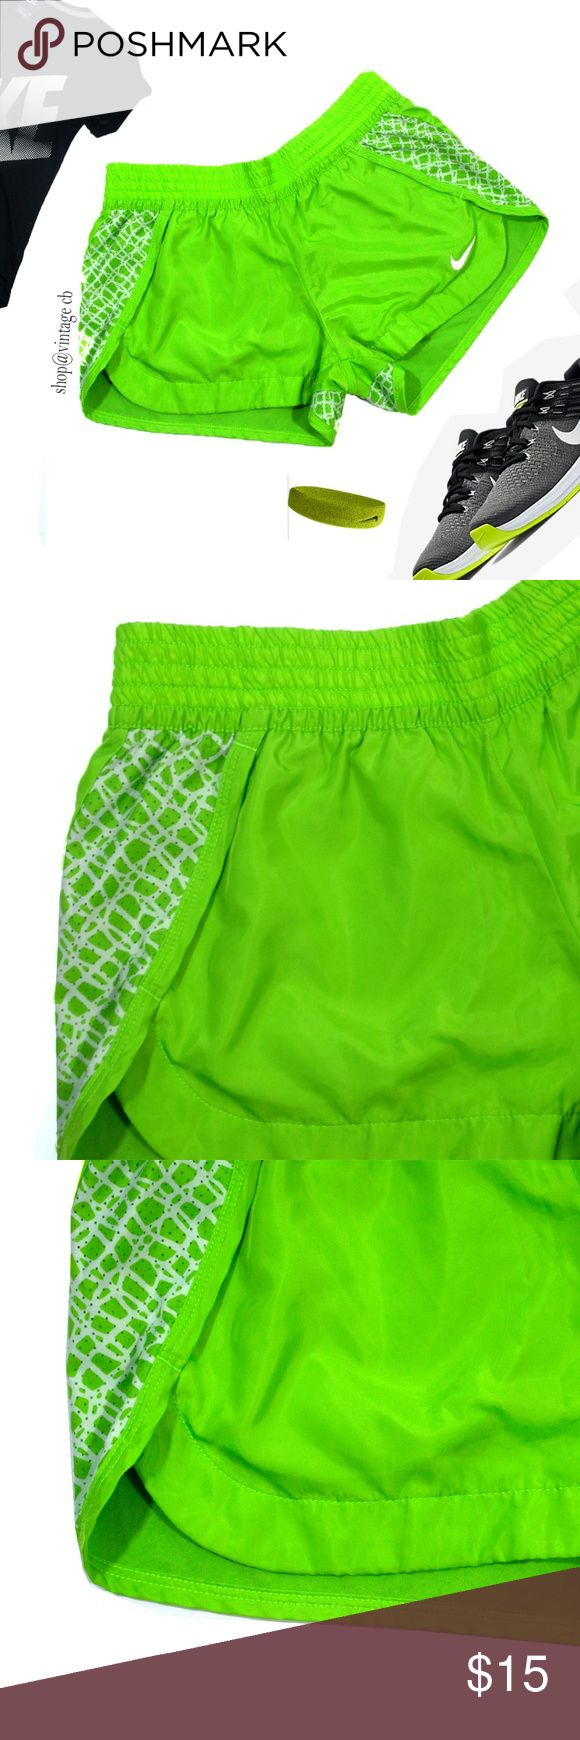 "Nike Dry Fit Neon Green Running Shorts Small Nike Neon Green Shorts with elastic waist band and  Contrasting Trim Very comfortable and in like new condition.   Size: Small Waist: 28"" (can stretch with Elastic) Length: 11"" Nike Shorts"